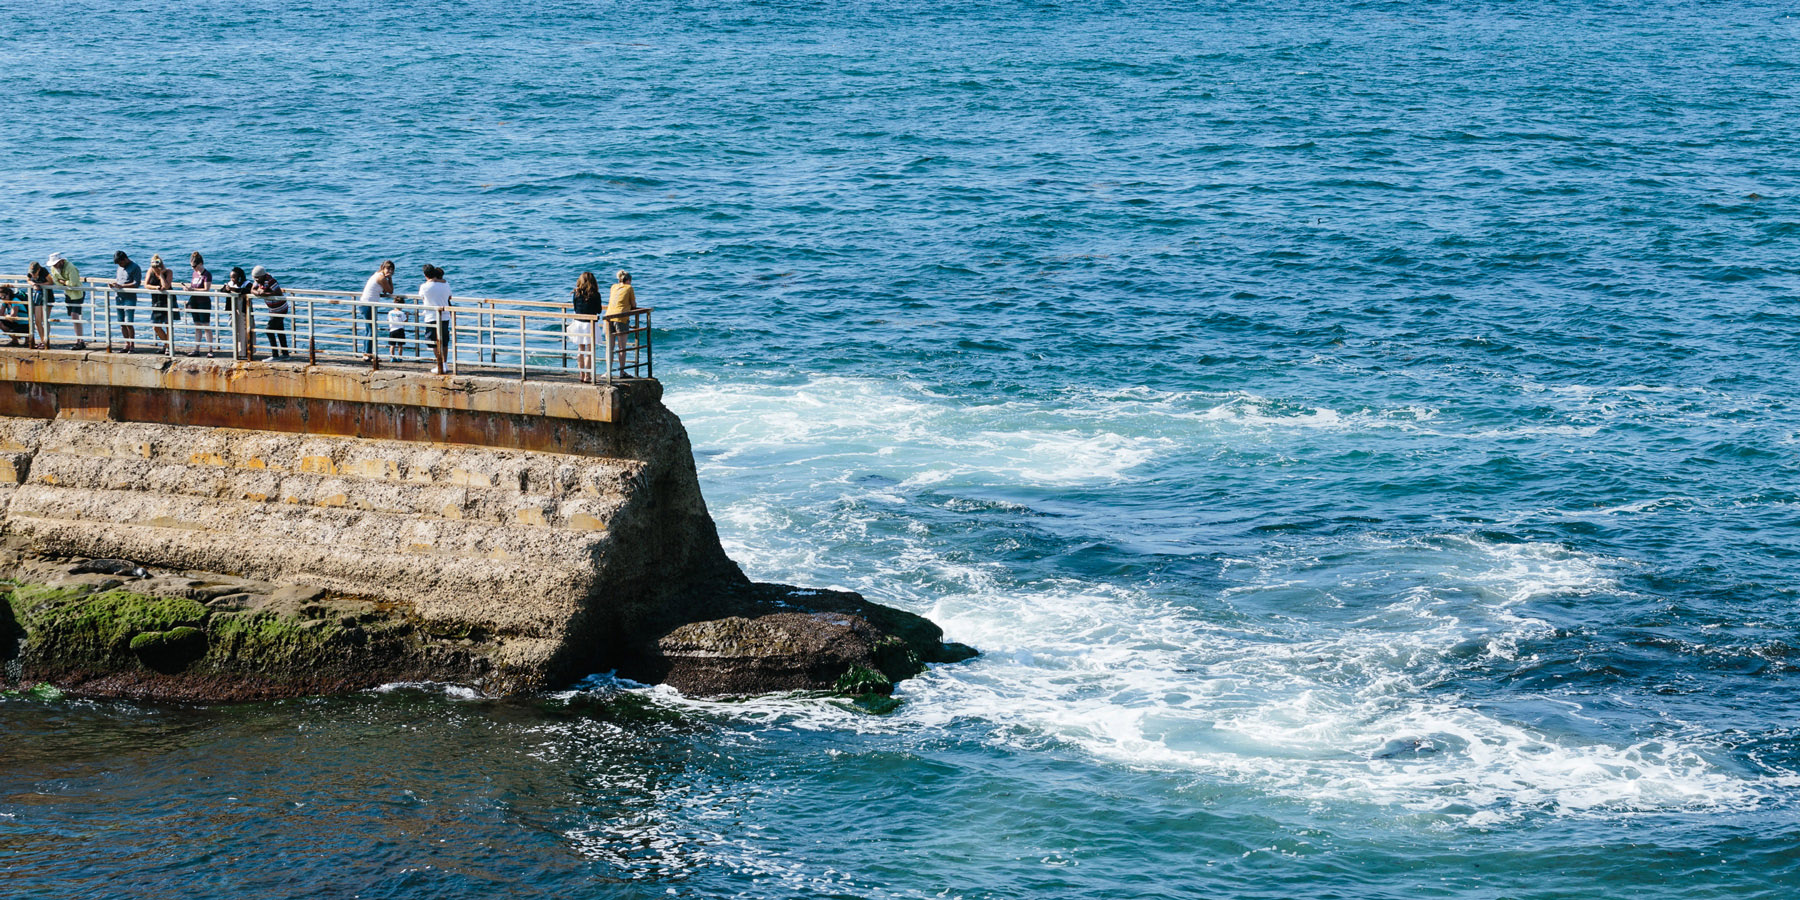 People stand on a seawall that juts into the ocean.